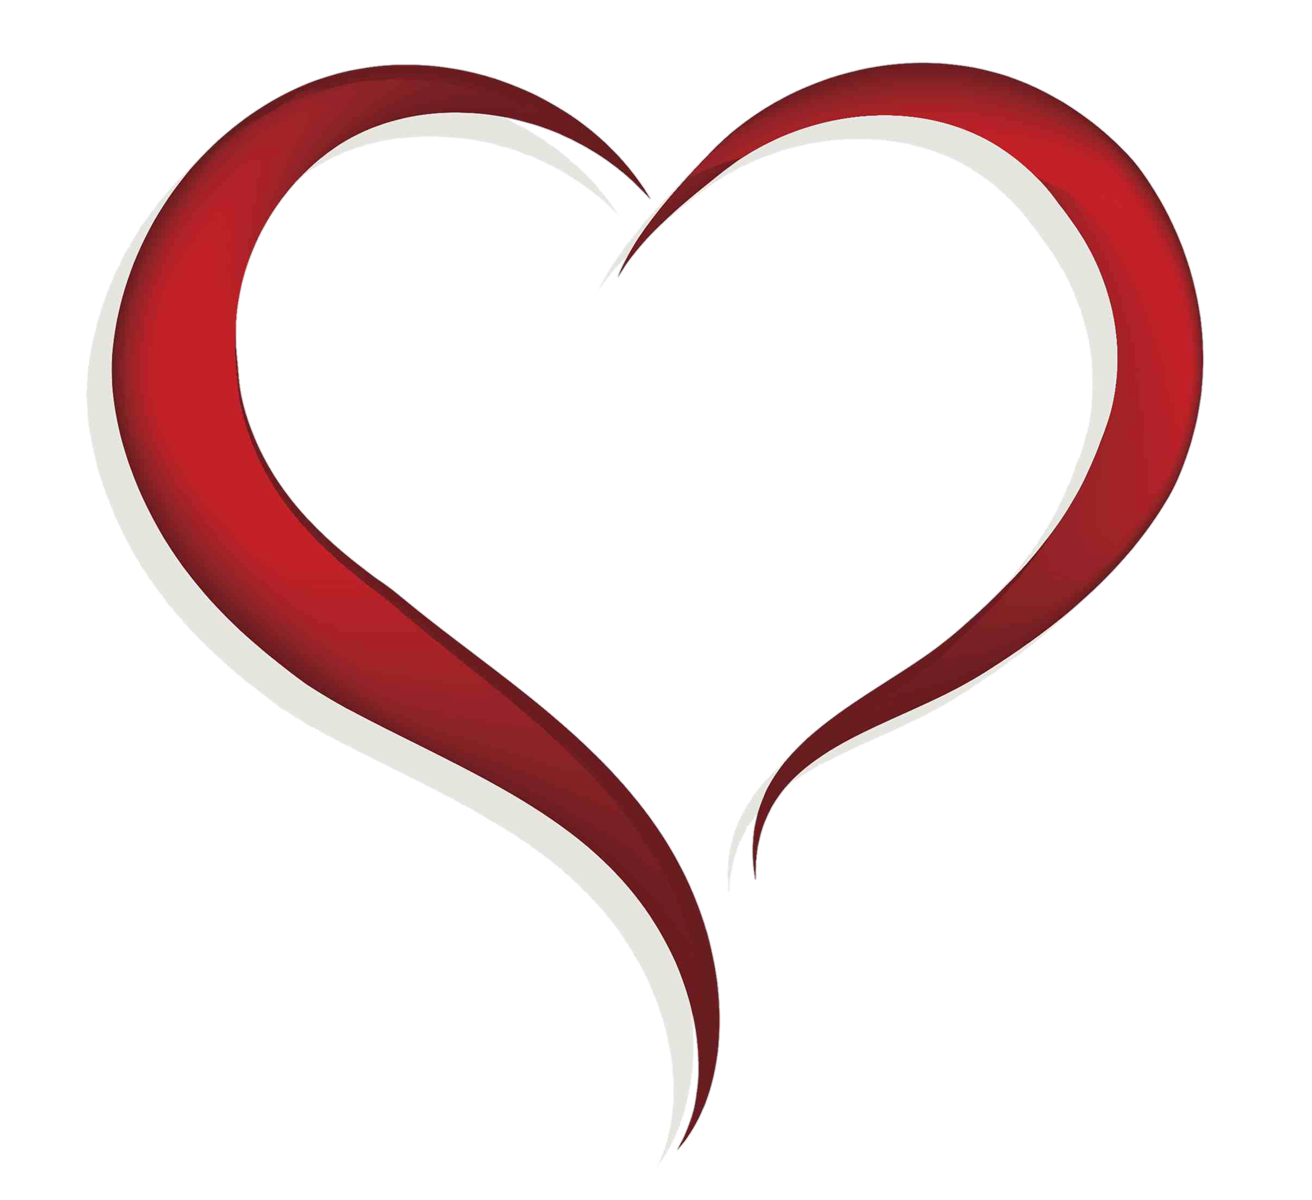 Clipart heart home. Objects png image transparent